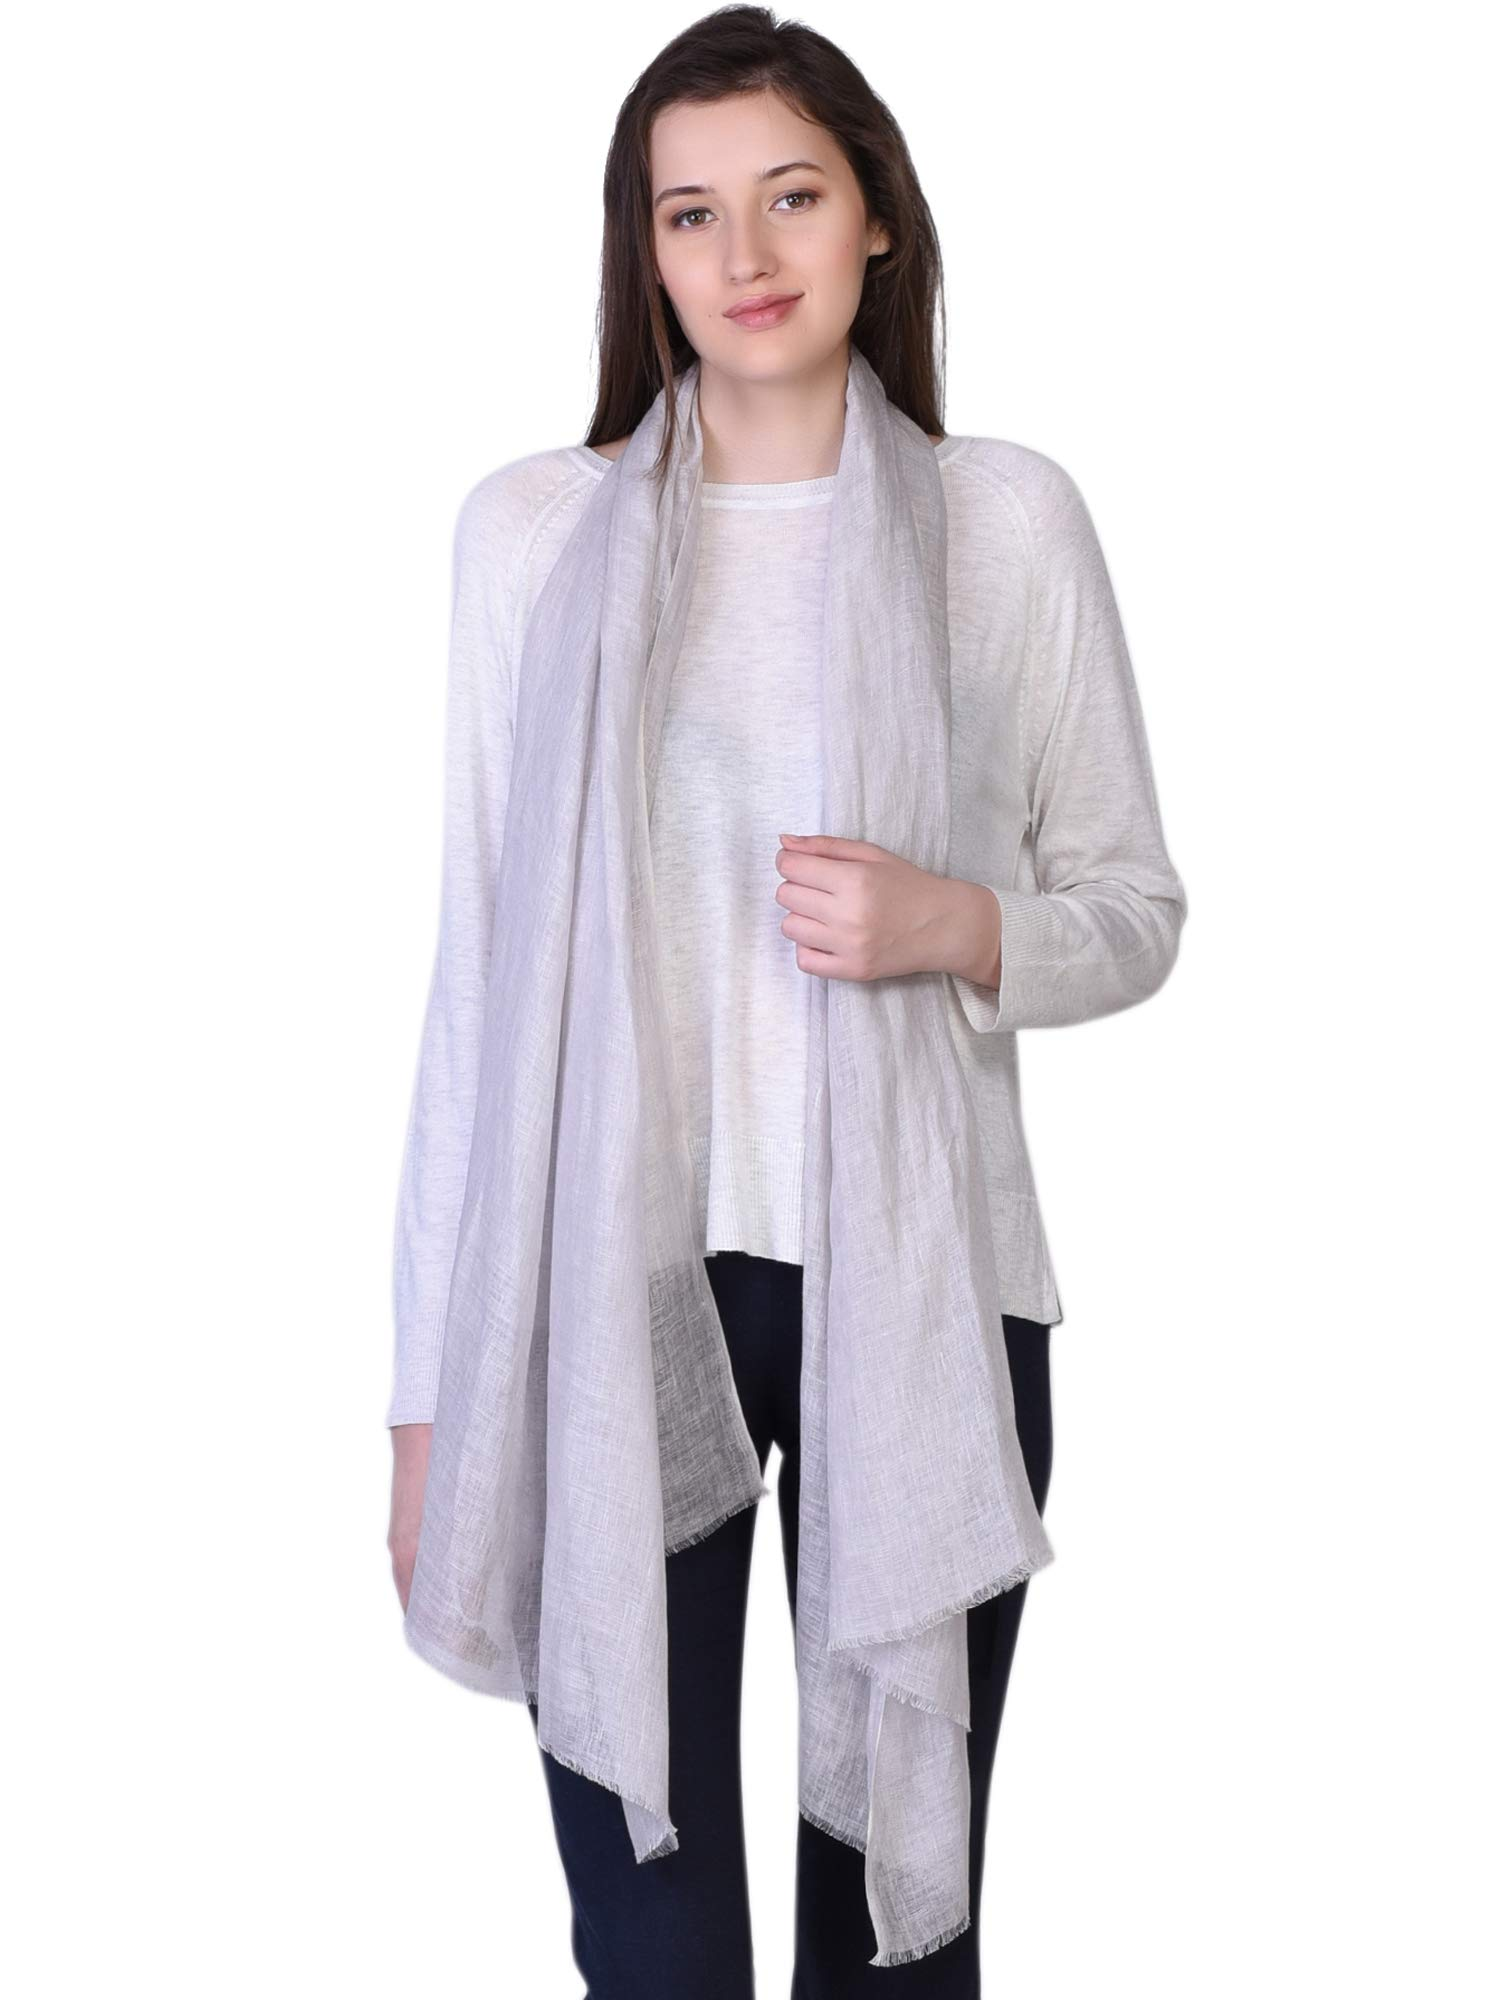 100% Linen Scarf Autumn Collection 2018-19 Womens Mens Fashion Solid Stole Shawl Pashmina by KASHFAB